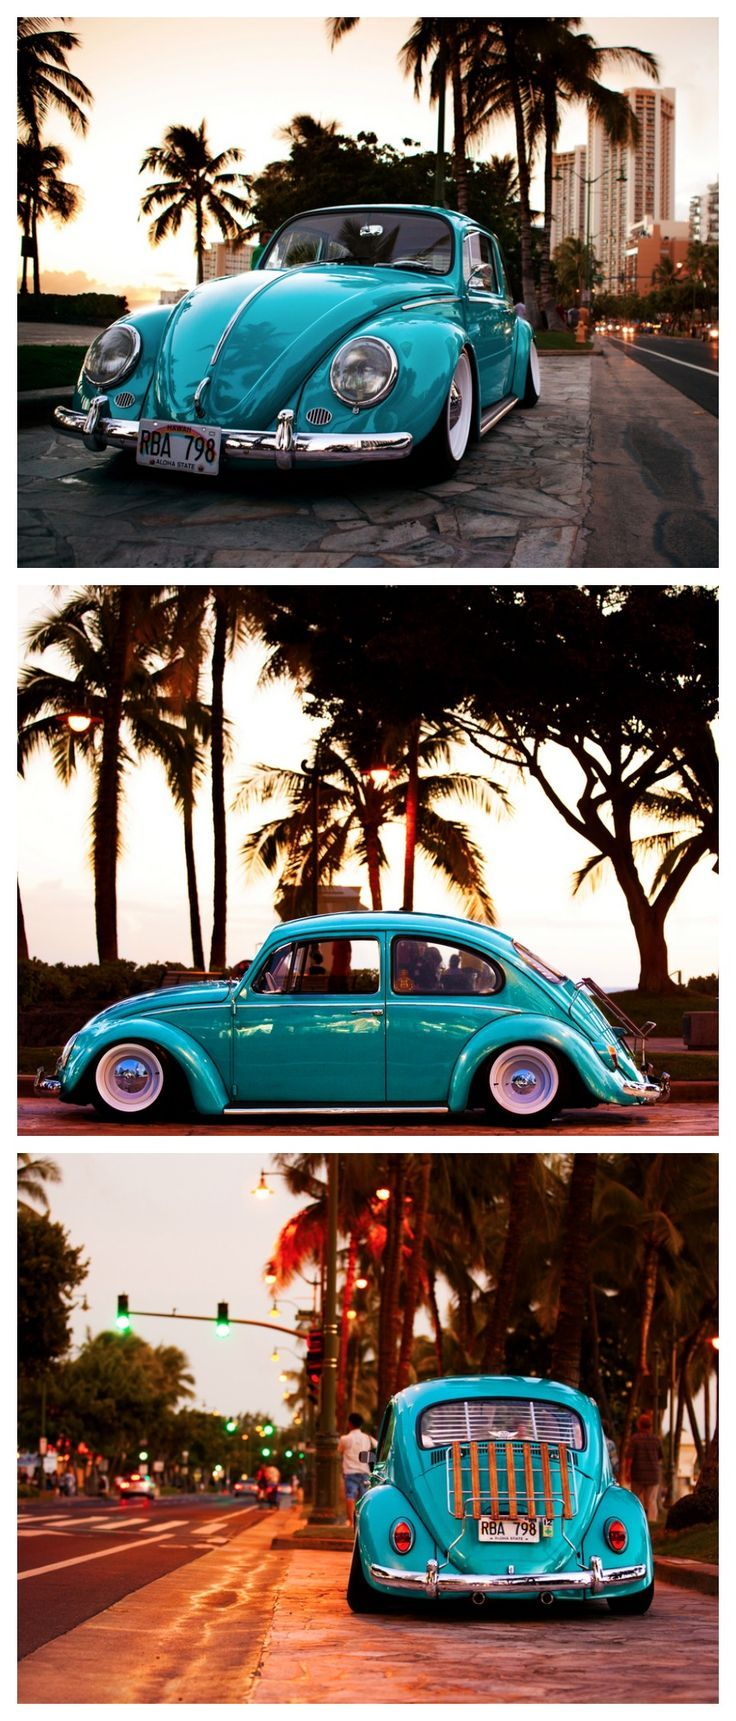 The iconic VW Beetle. No surprises it is one of the best selling cars of all time. Click to find out the Top 5.